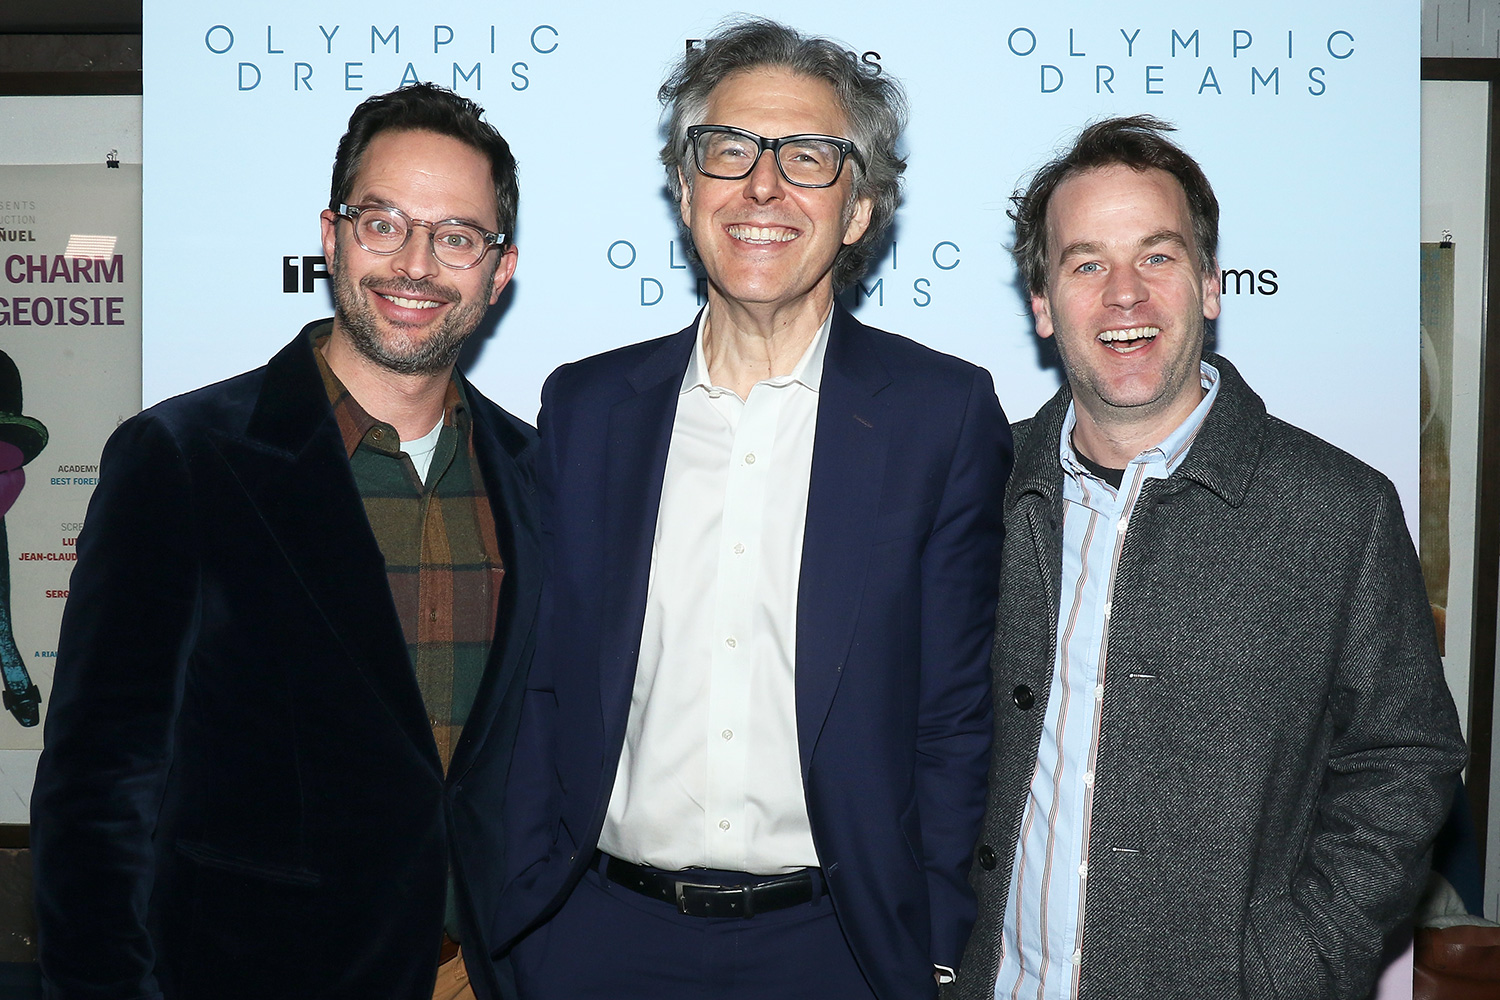 """Nick Kroll, Ira Glass and comedian Mike Birbiglia attend the """"Olympic Dreams"""" New York screening at IFC Center on February 12, 2020 in New York City"""